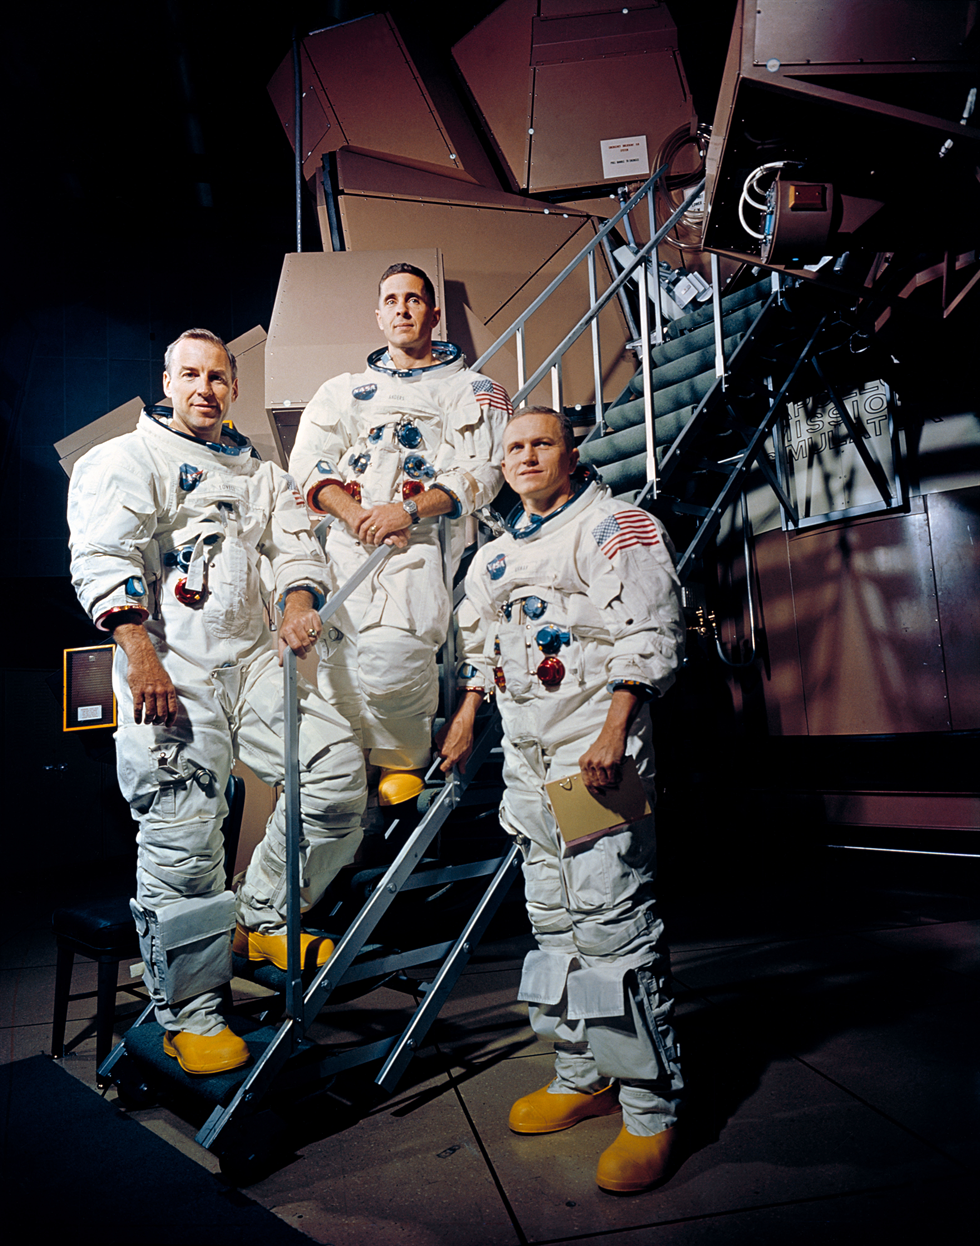 The prime crew of Apollo 8. From left: James A. Lovell Jr., command module pilot; William A. Anders, lunar module pilot; and Frank Borman, commander. Image Credit: NASA